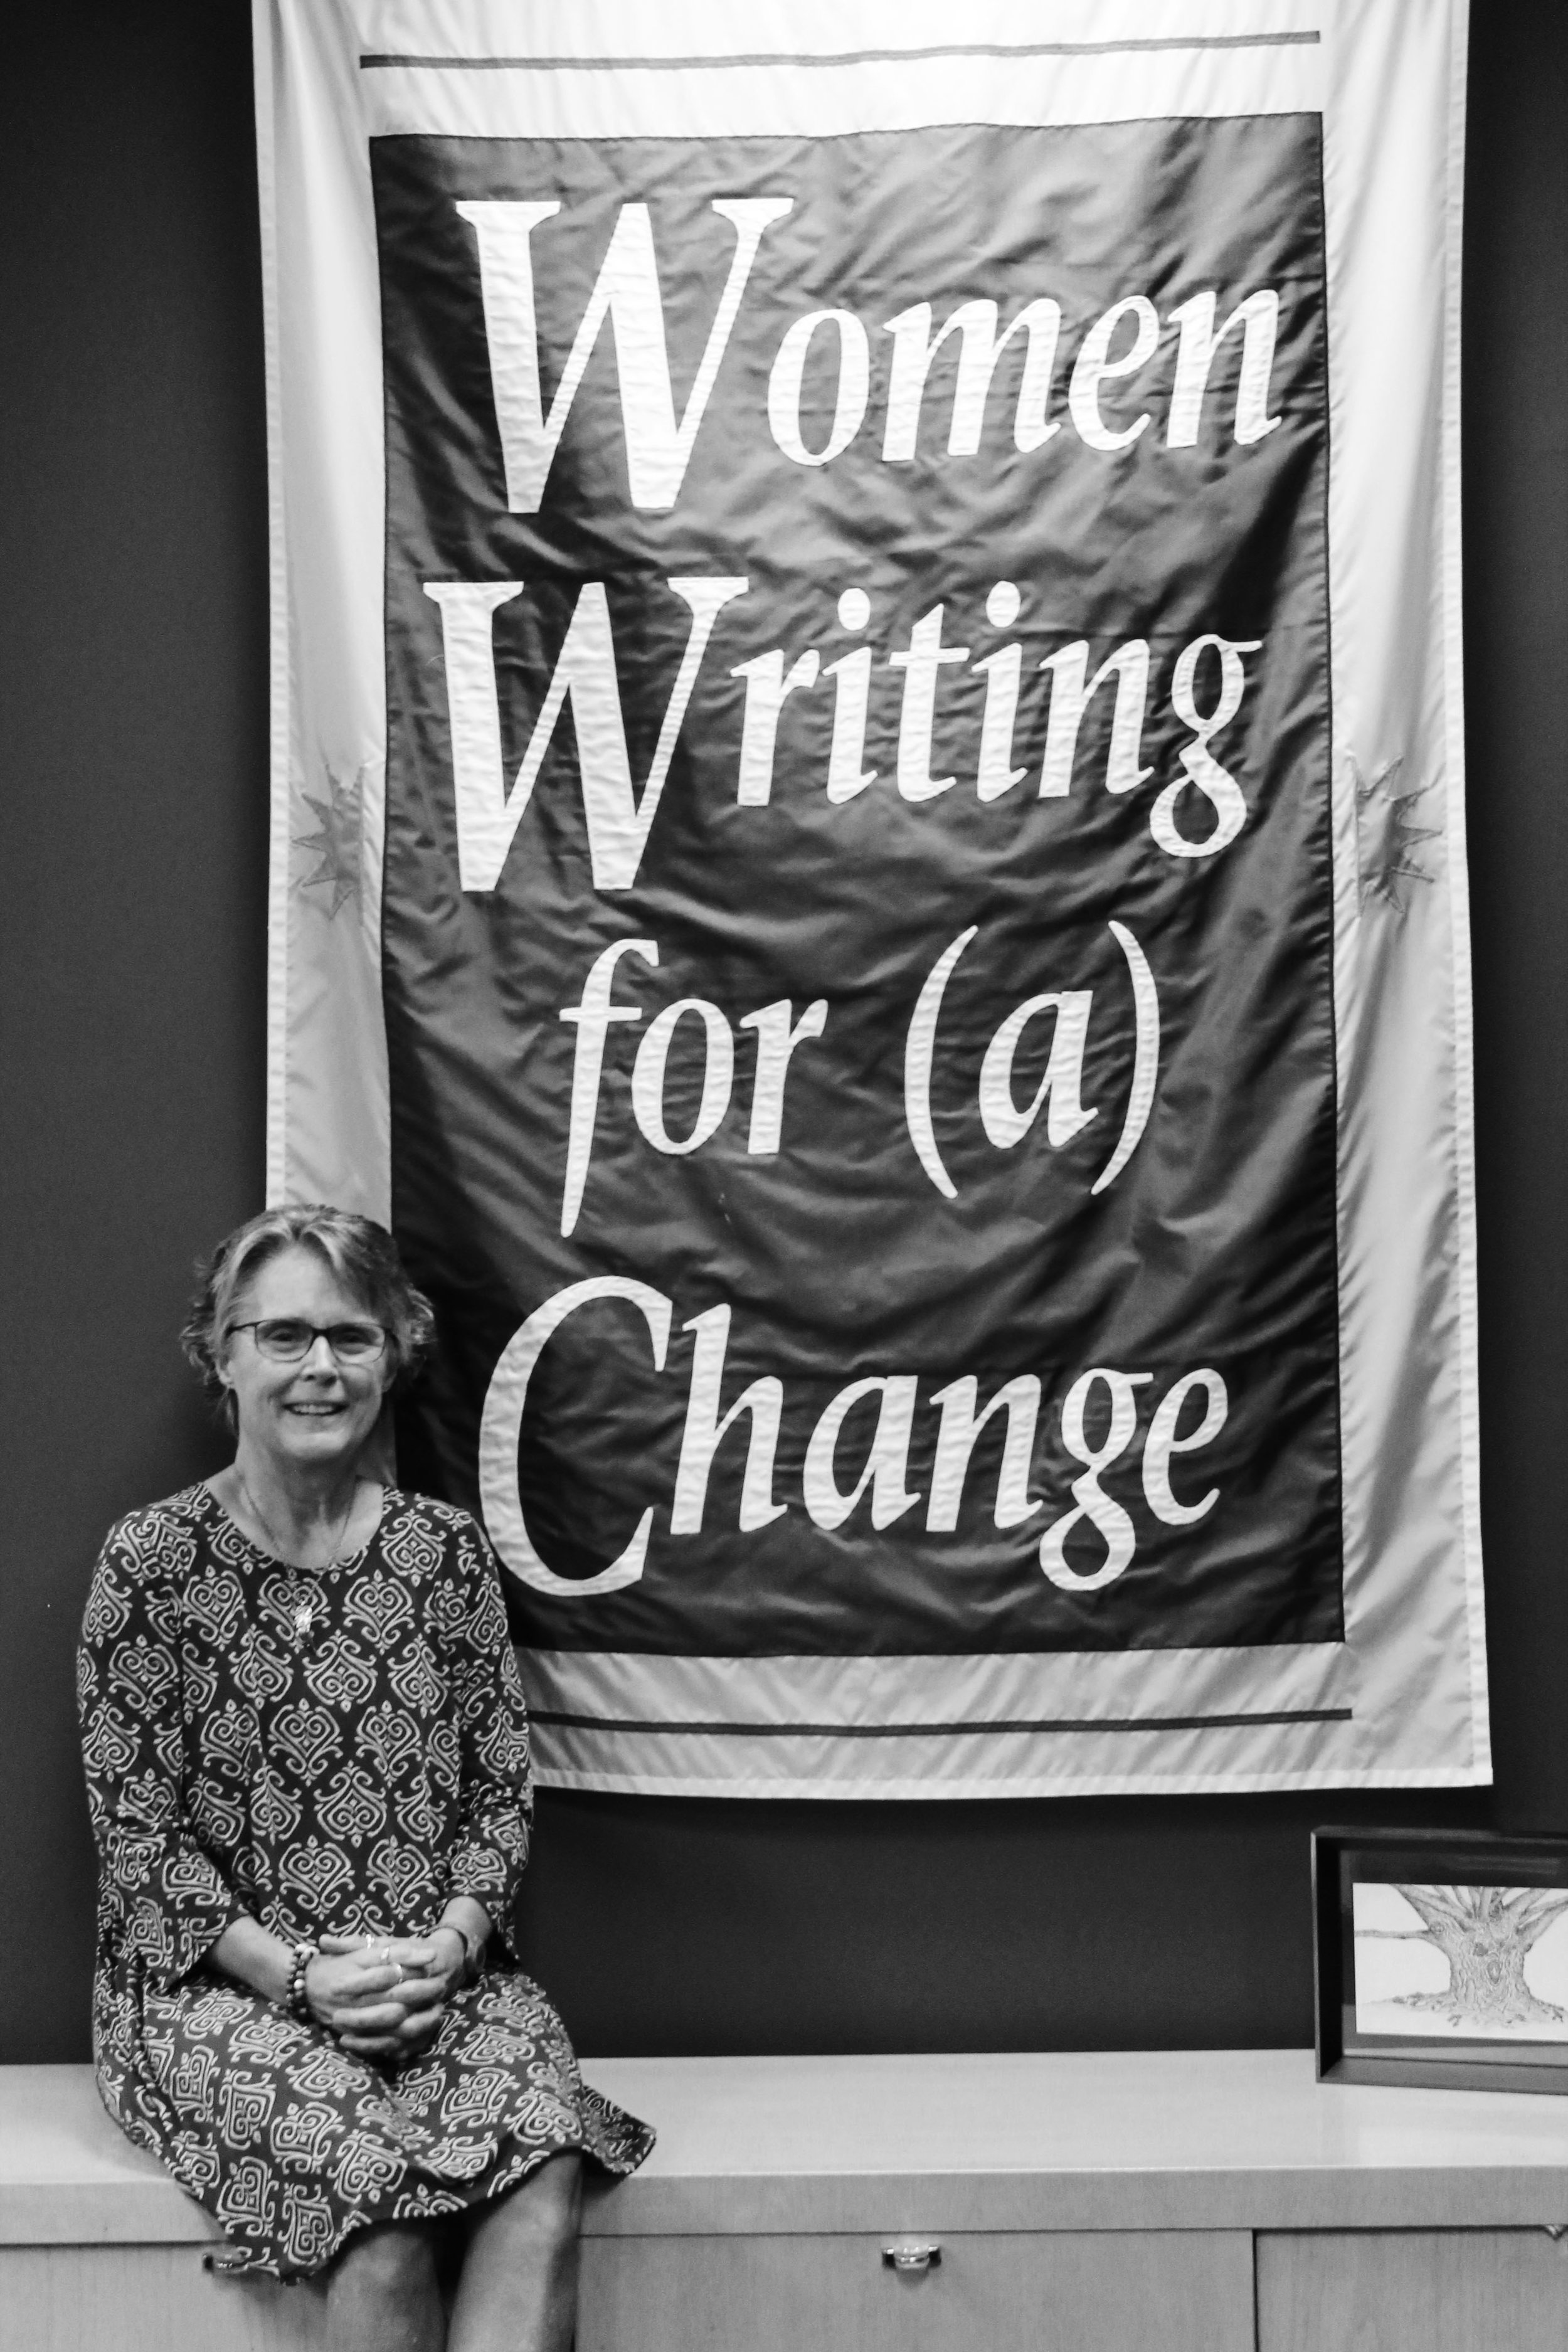 Laurie poses with a beaming smile in front of a Women Writing for a Change sign.